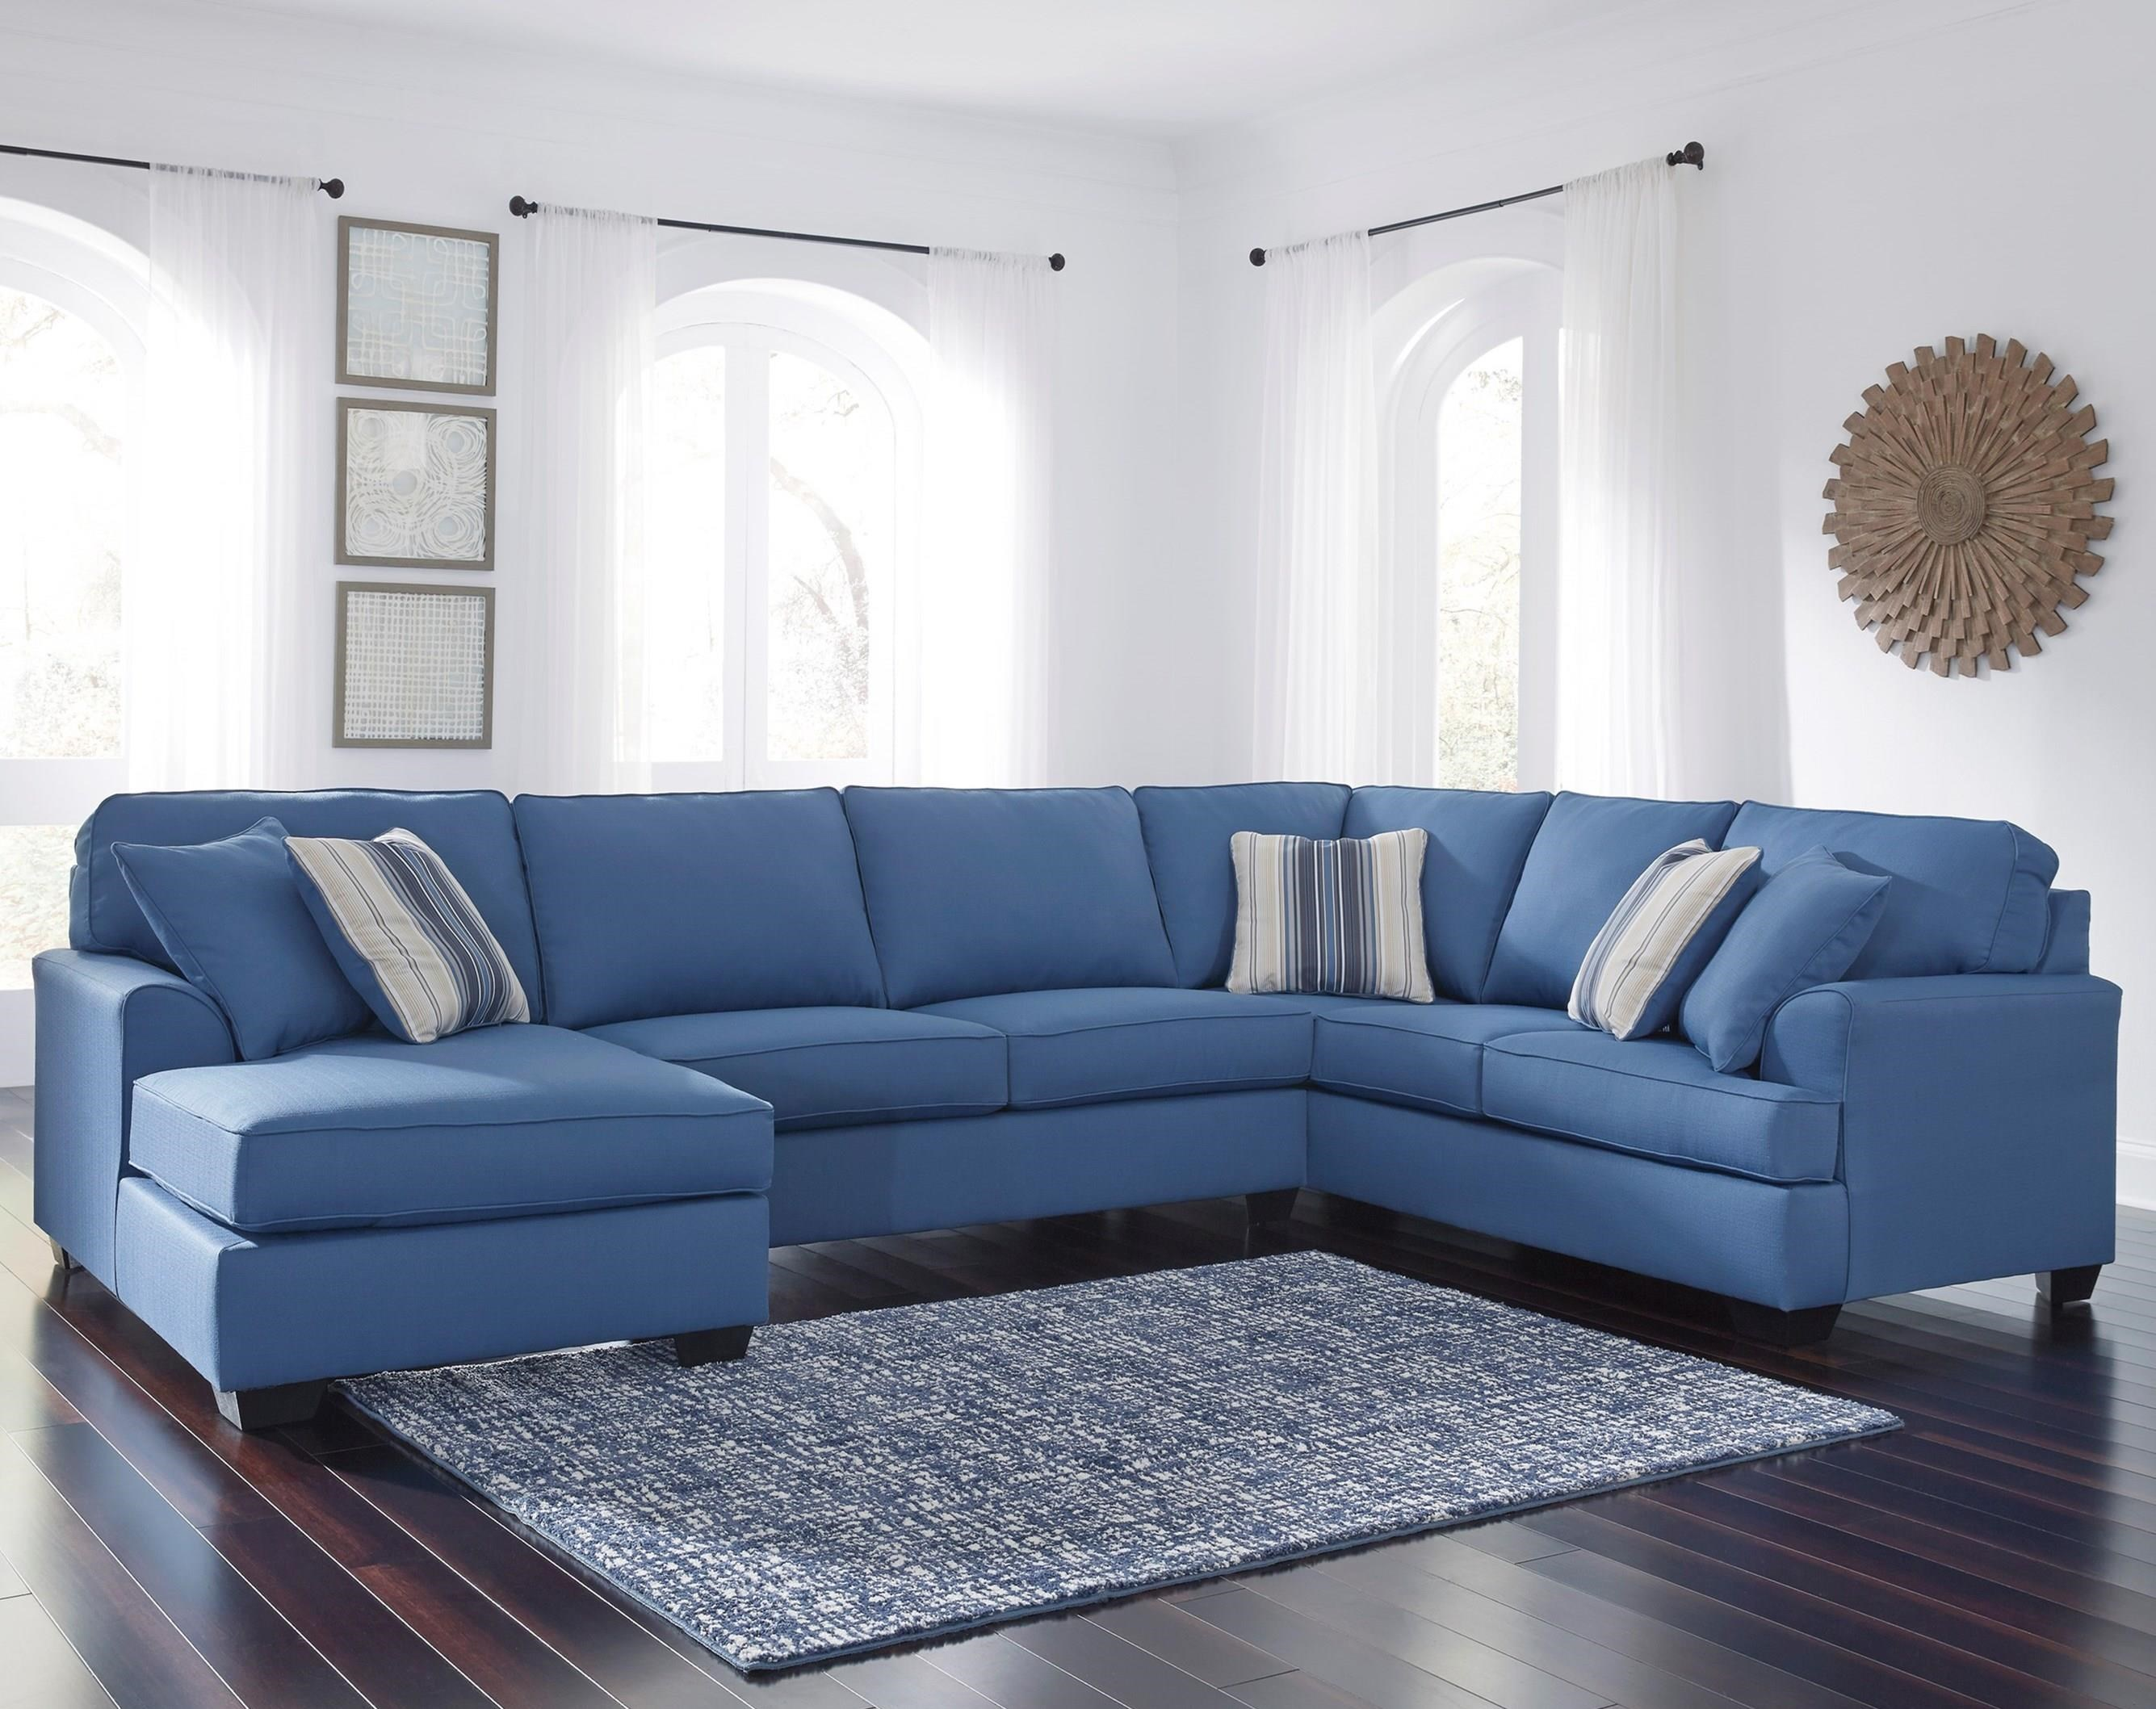 sofa loveseat sale for velvet leather midnight navy size suede blue light full of ideas sectional dark royal chair decorating couch